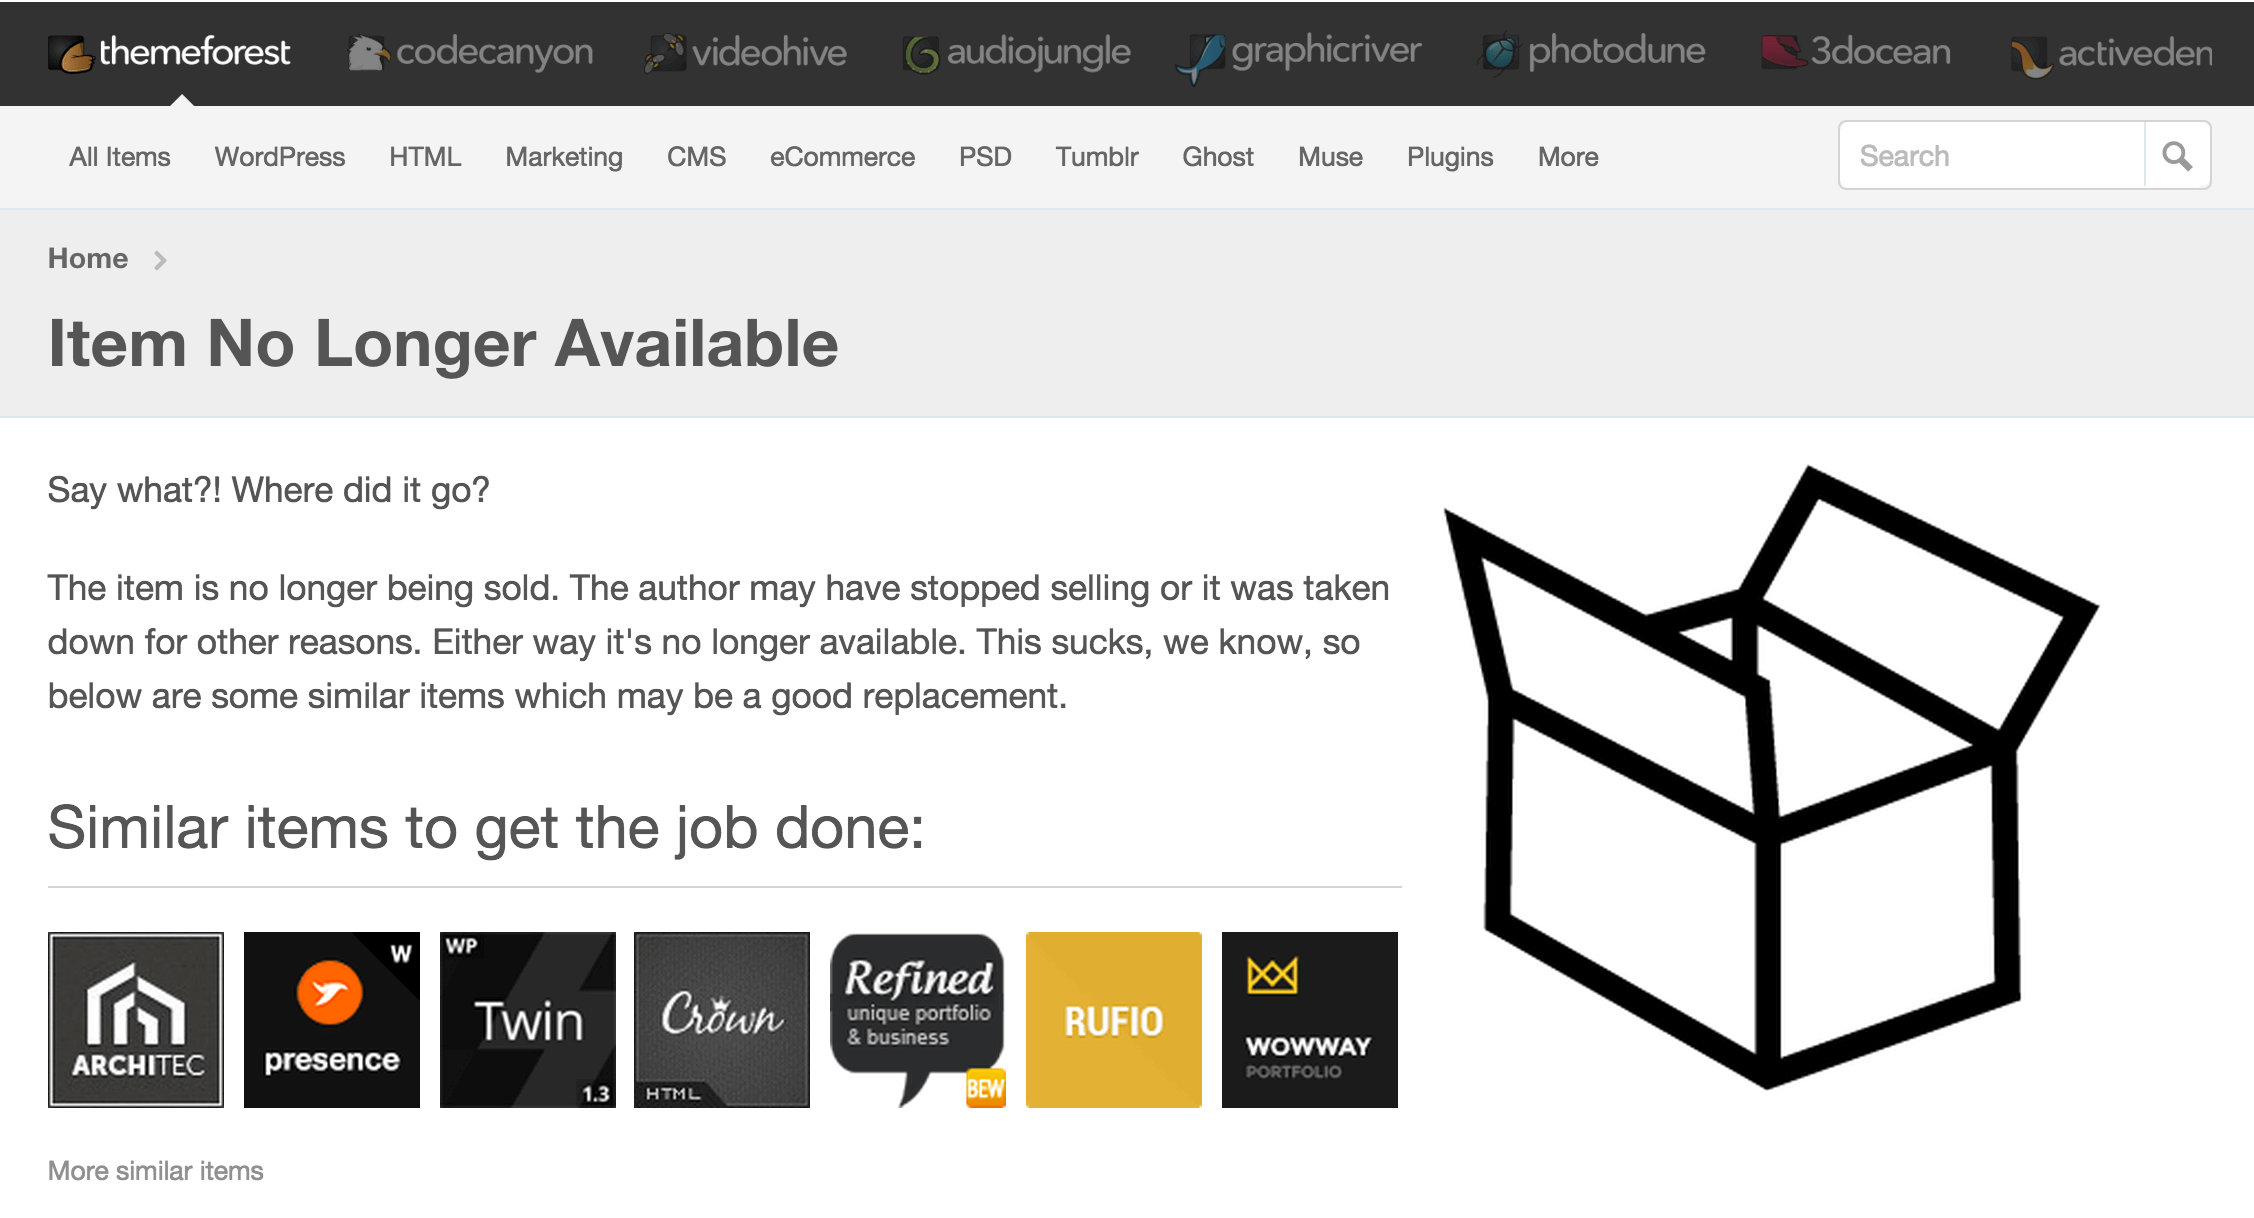 Envato has a great approach to discontinued products